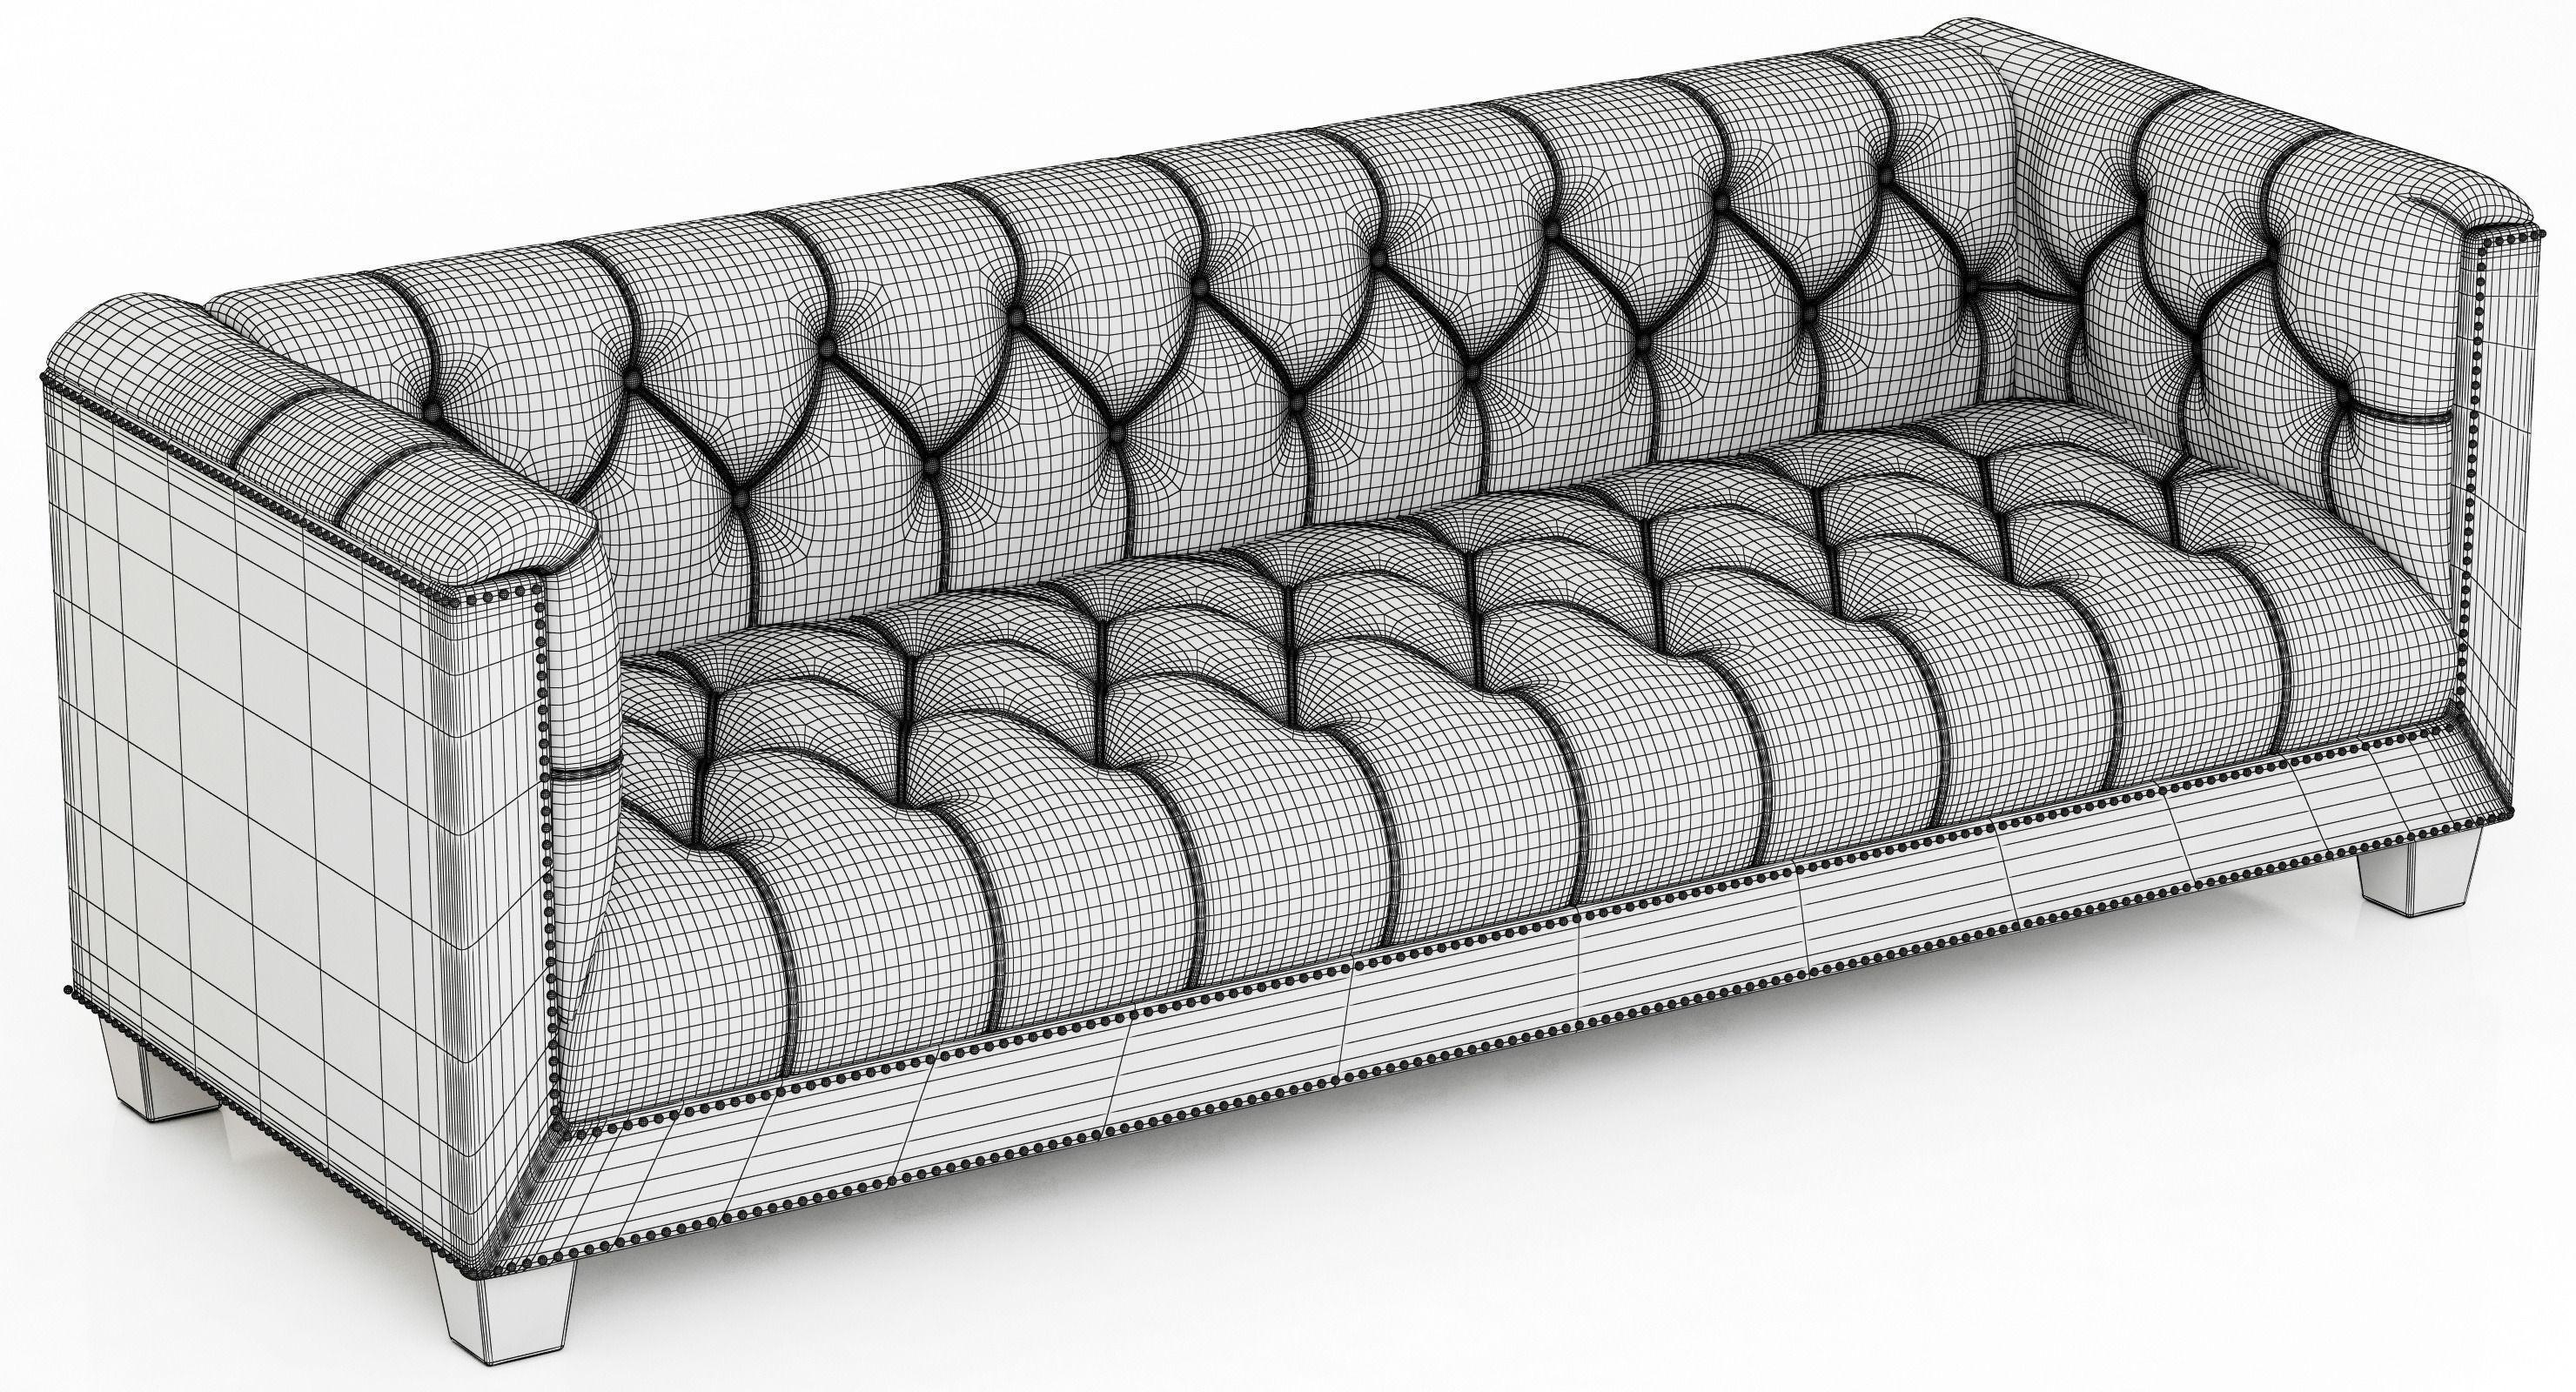 Restoration Hardware Savoy Leather Sofa 3D Model With Savoy Leather Sofas (Image 15 of 20)